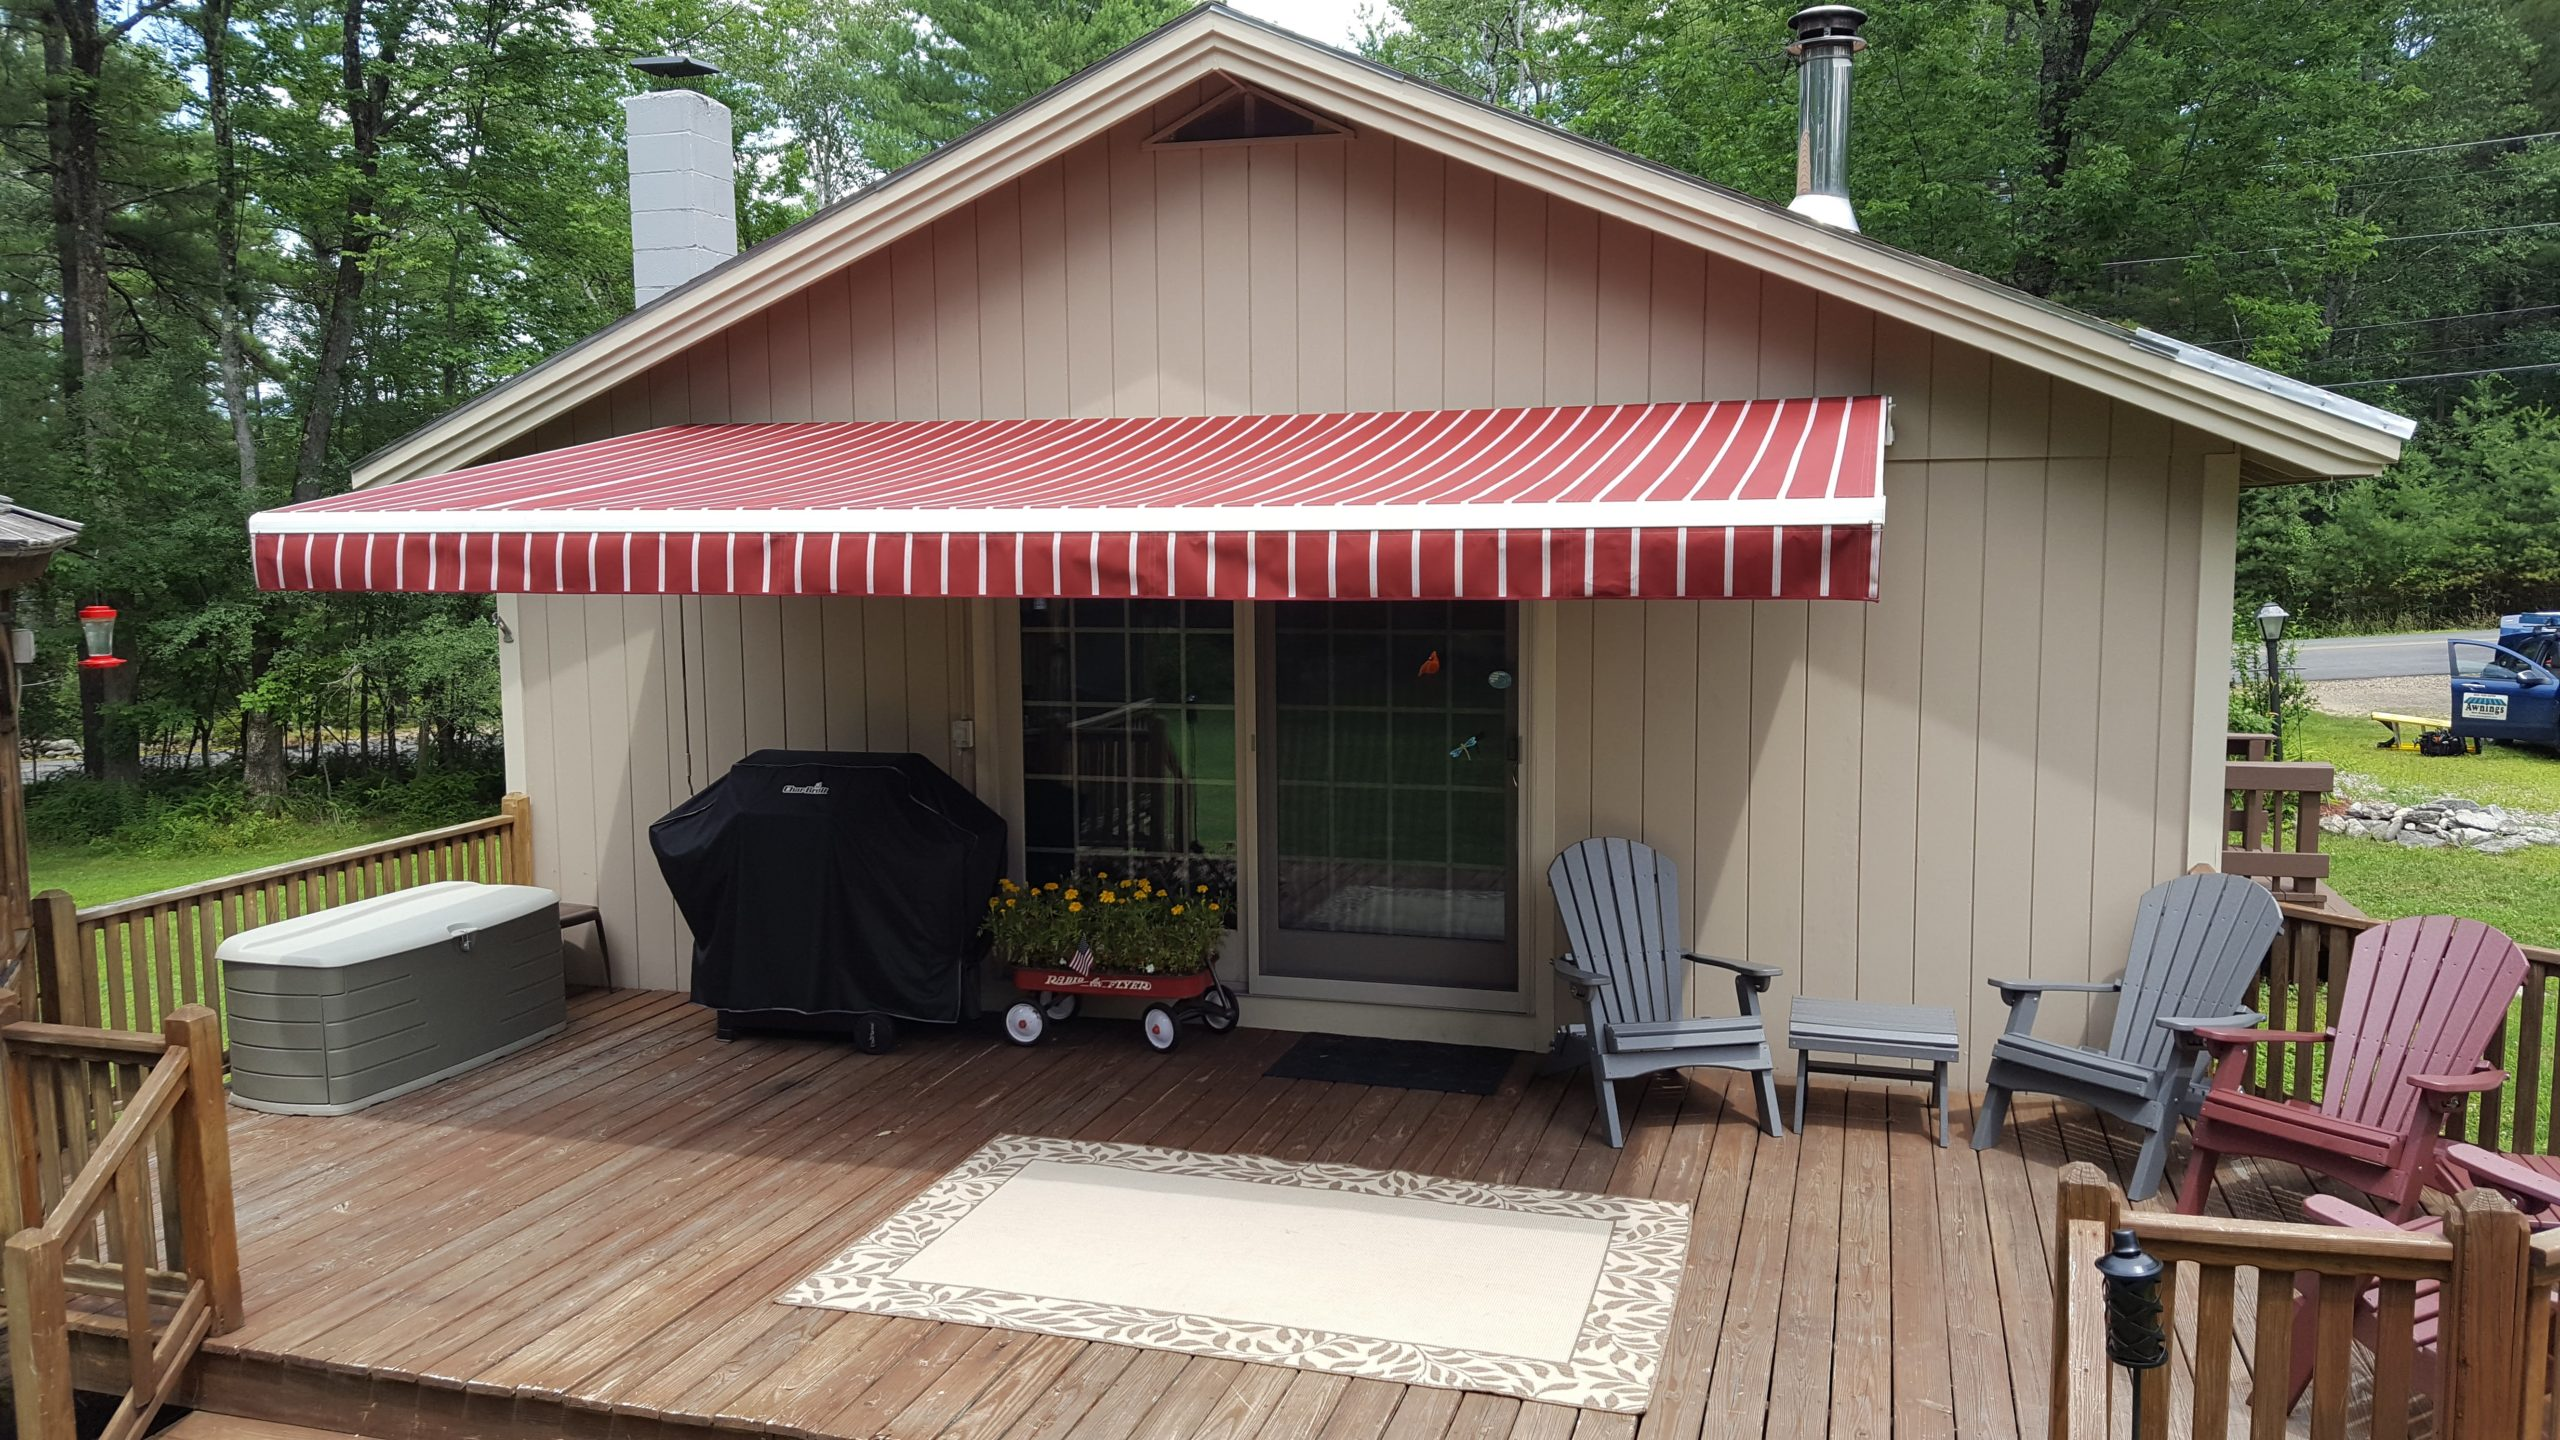 cute red striped awning on a small house